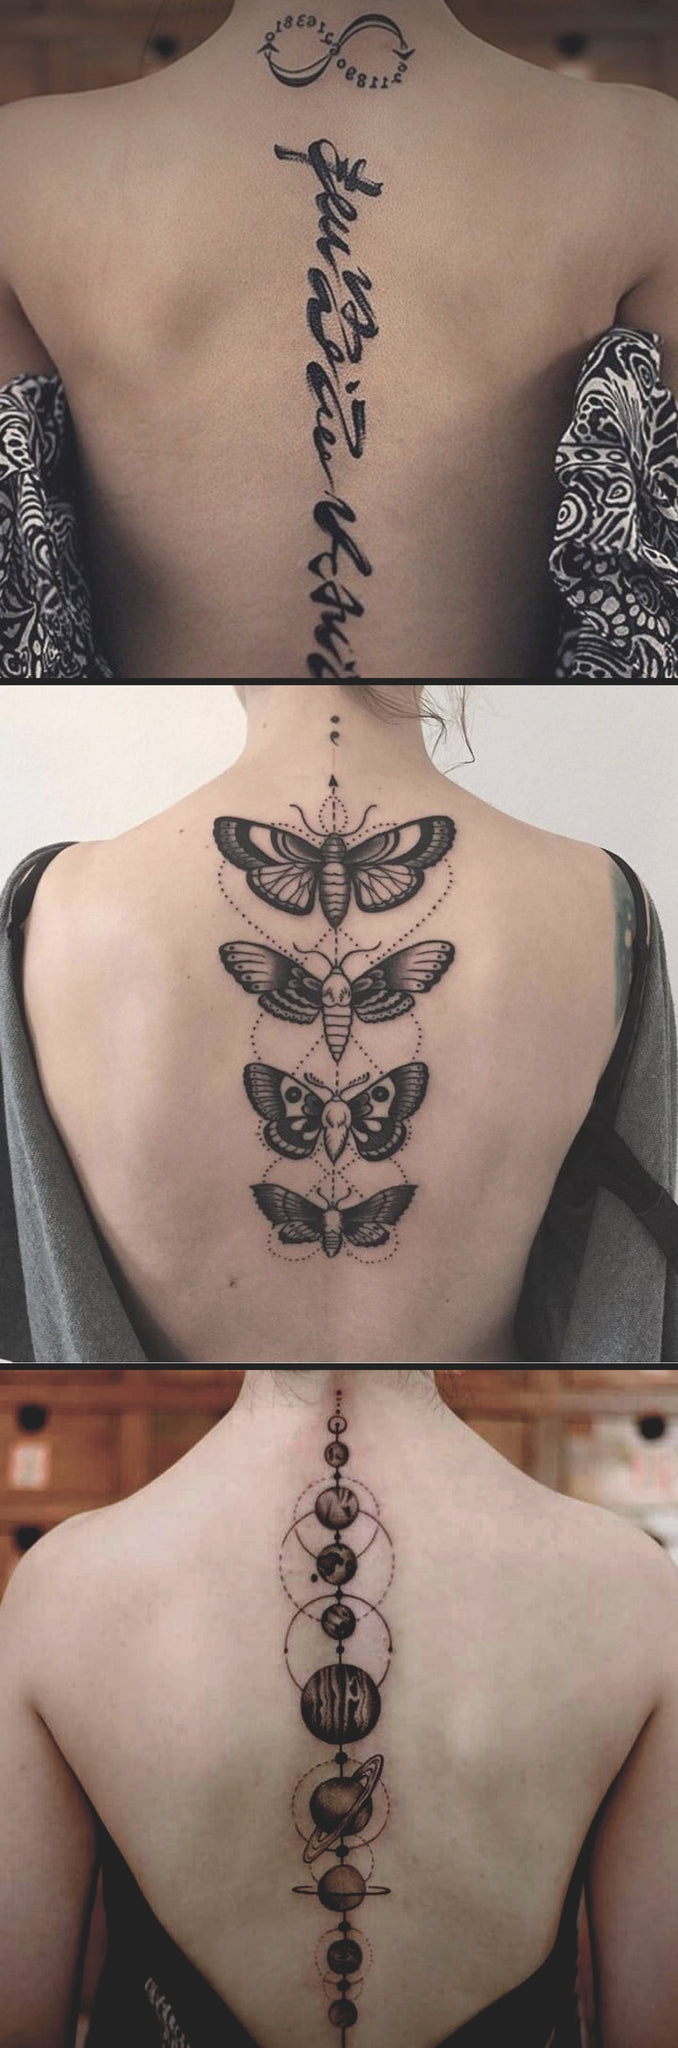 50+ Inspirational Spine Tattoo Ideas for Women with Meaning – MyBodiArt